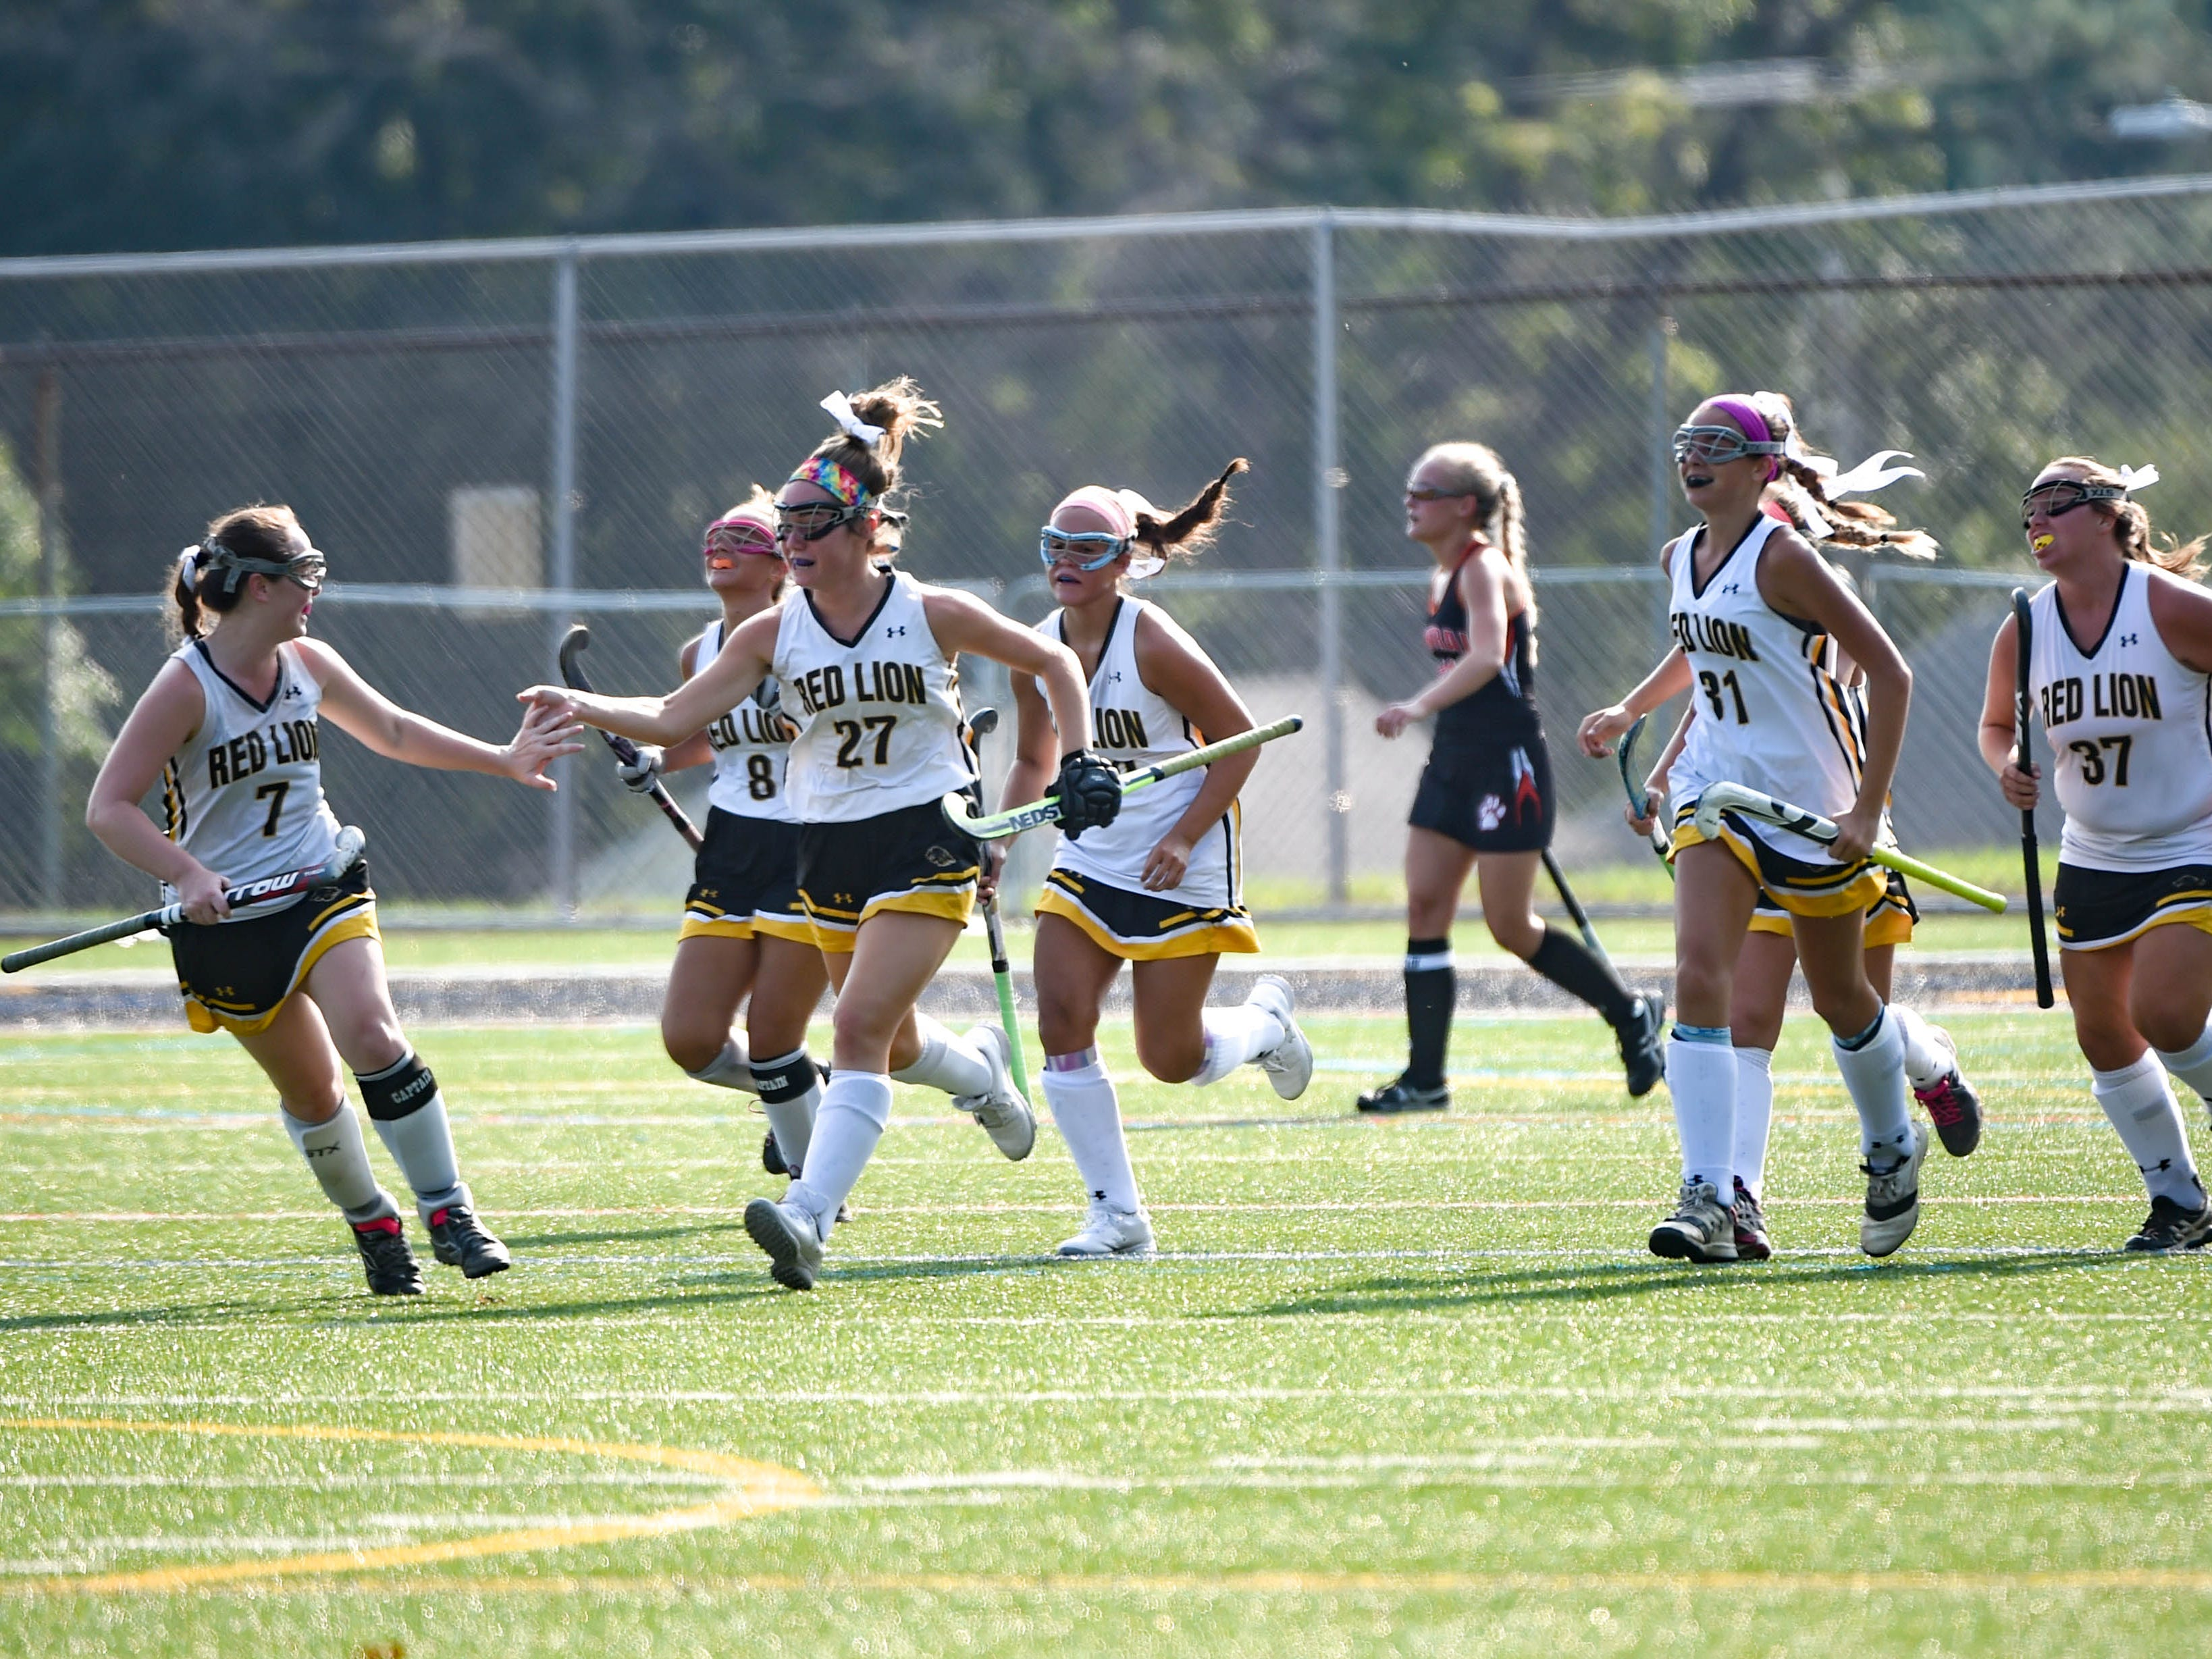 Red Lion celebrates after scoring a tough goal during the Division I girls field hockey game, Wednesday, September 19, 2018.